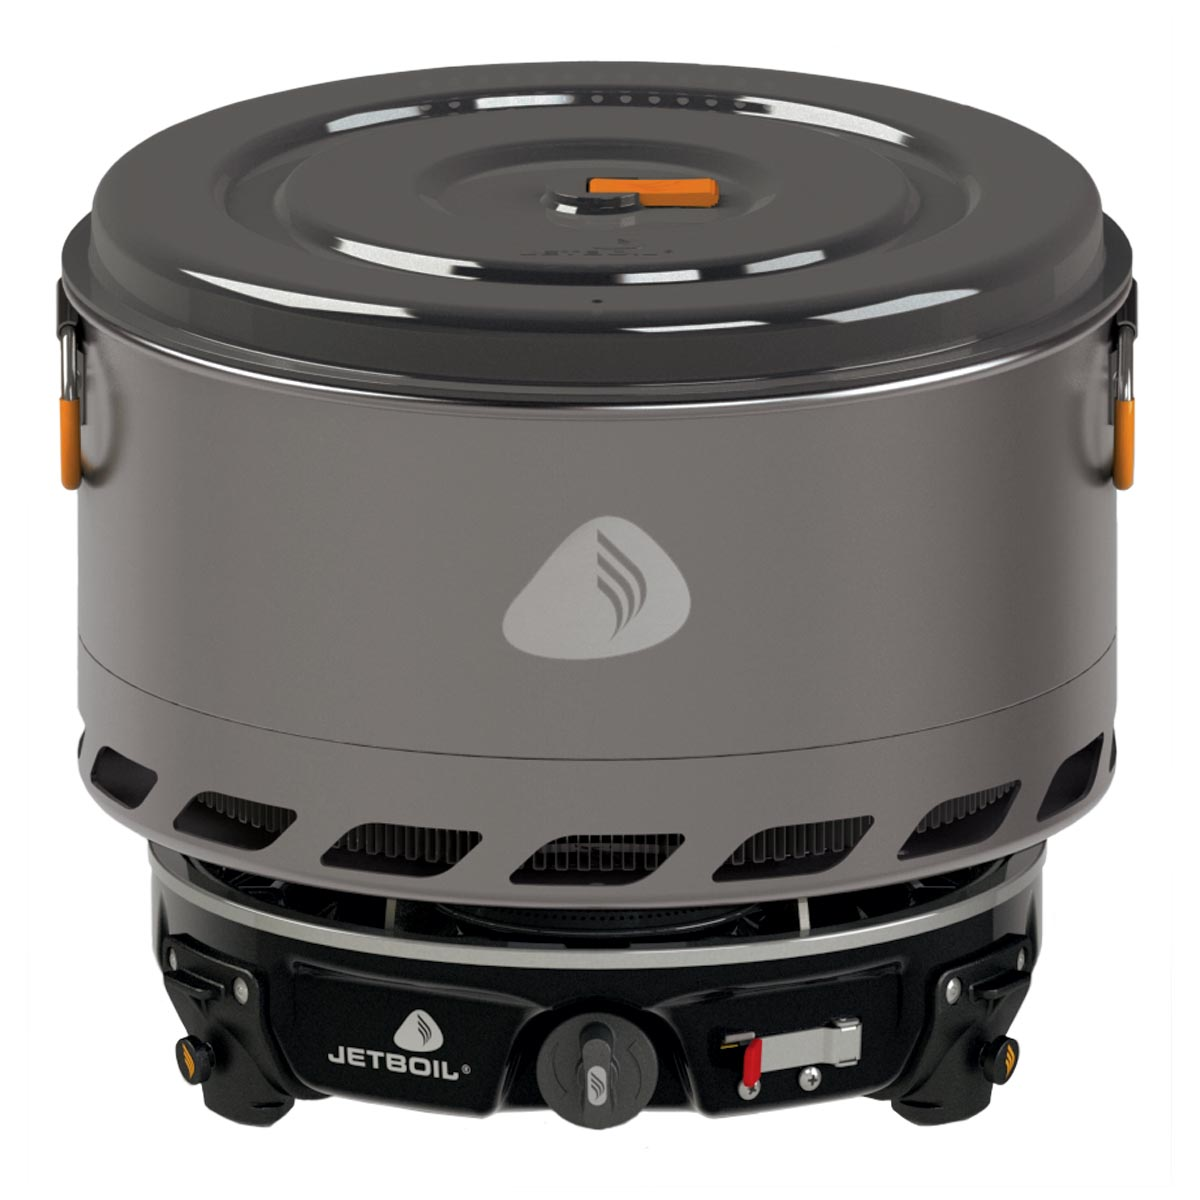 HALFGEN shown with 5L Flux Pot (sold separately)